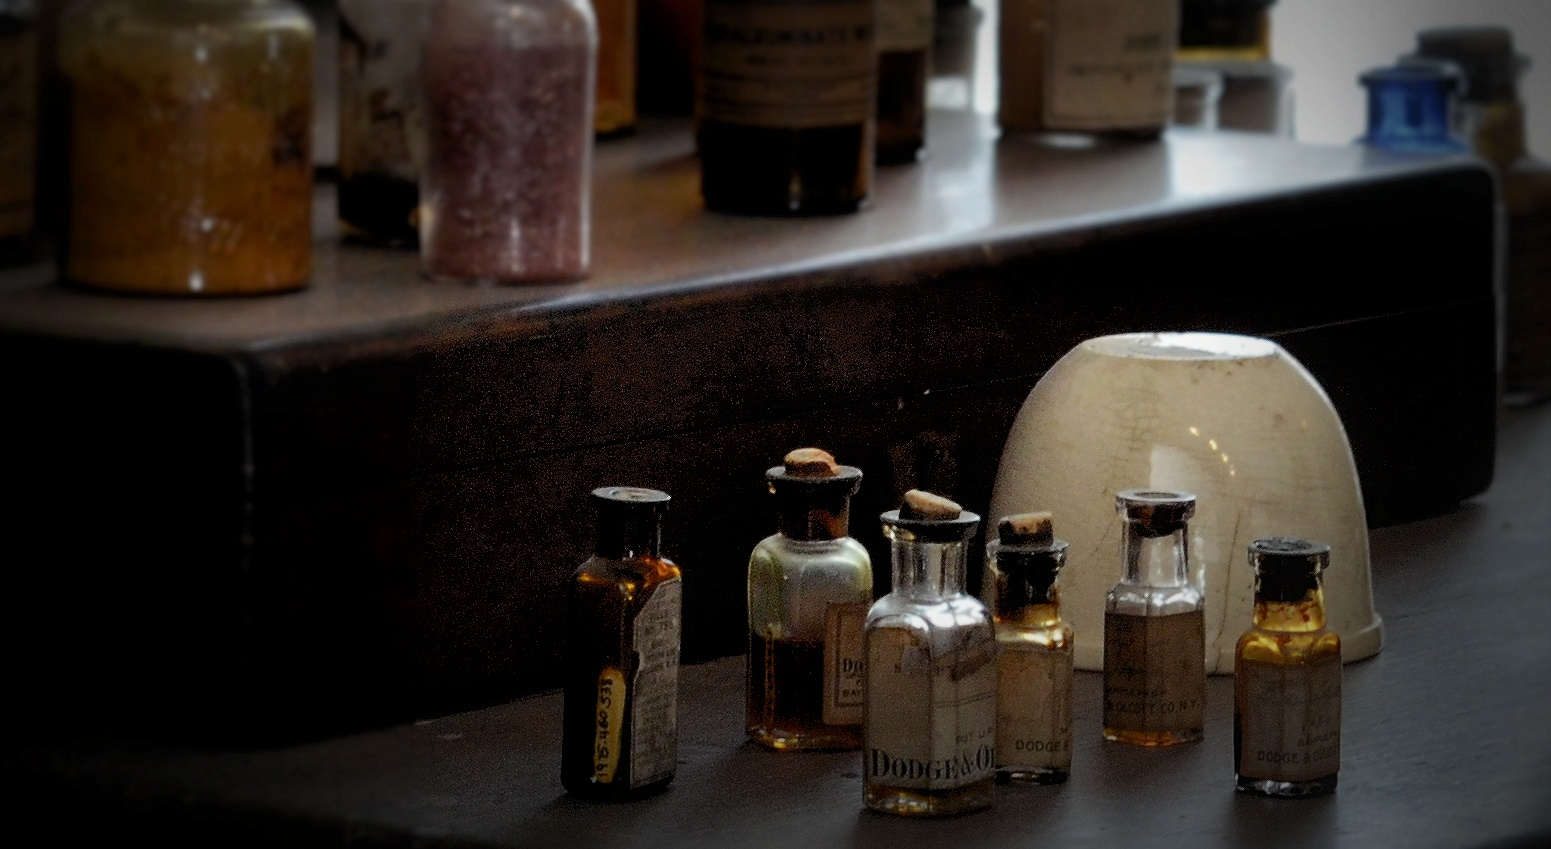 ...just a little bit of that old medicine. by C michael anthony